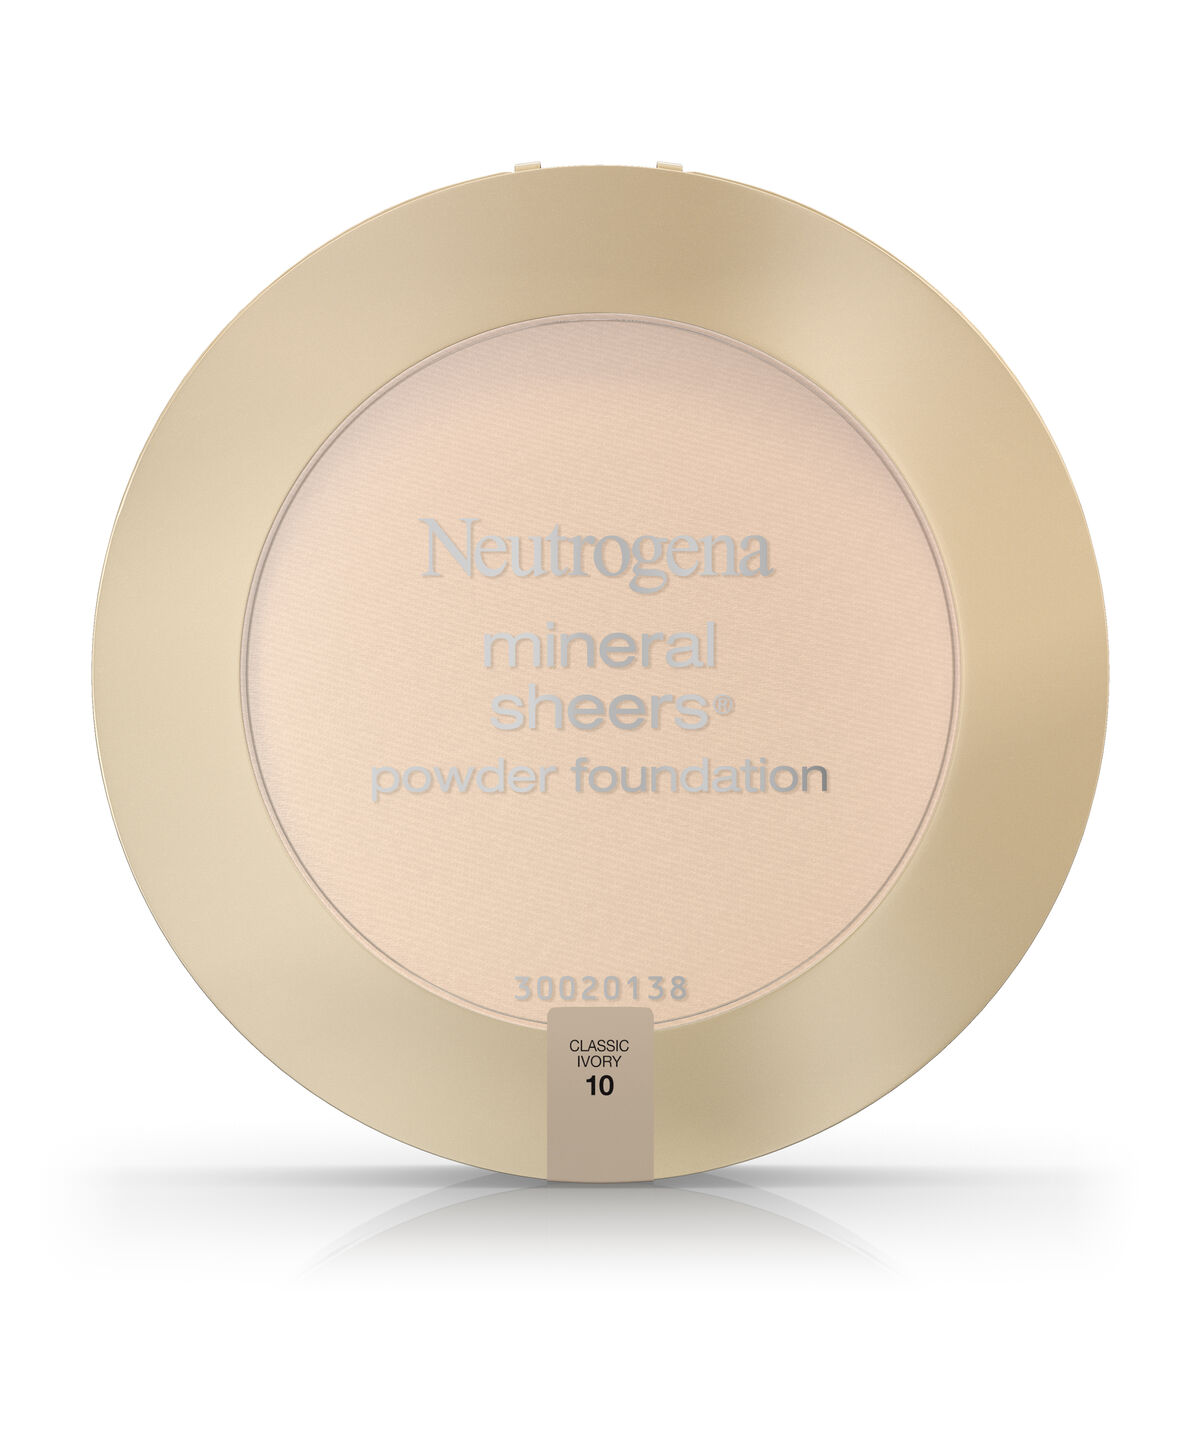 Neutrogena Mineral Sheers® Powder Foundation | Neutrogena®